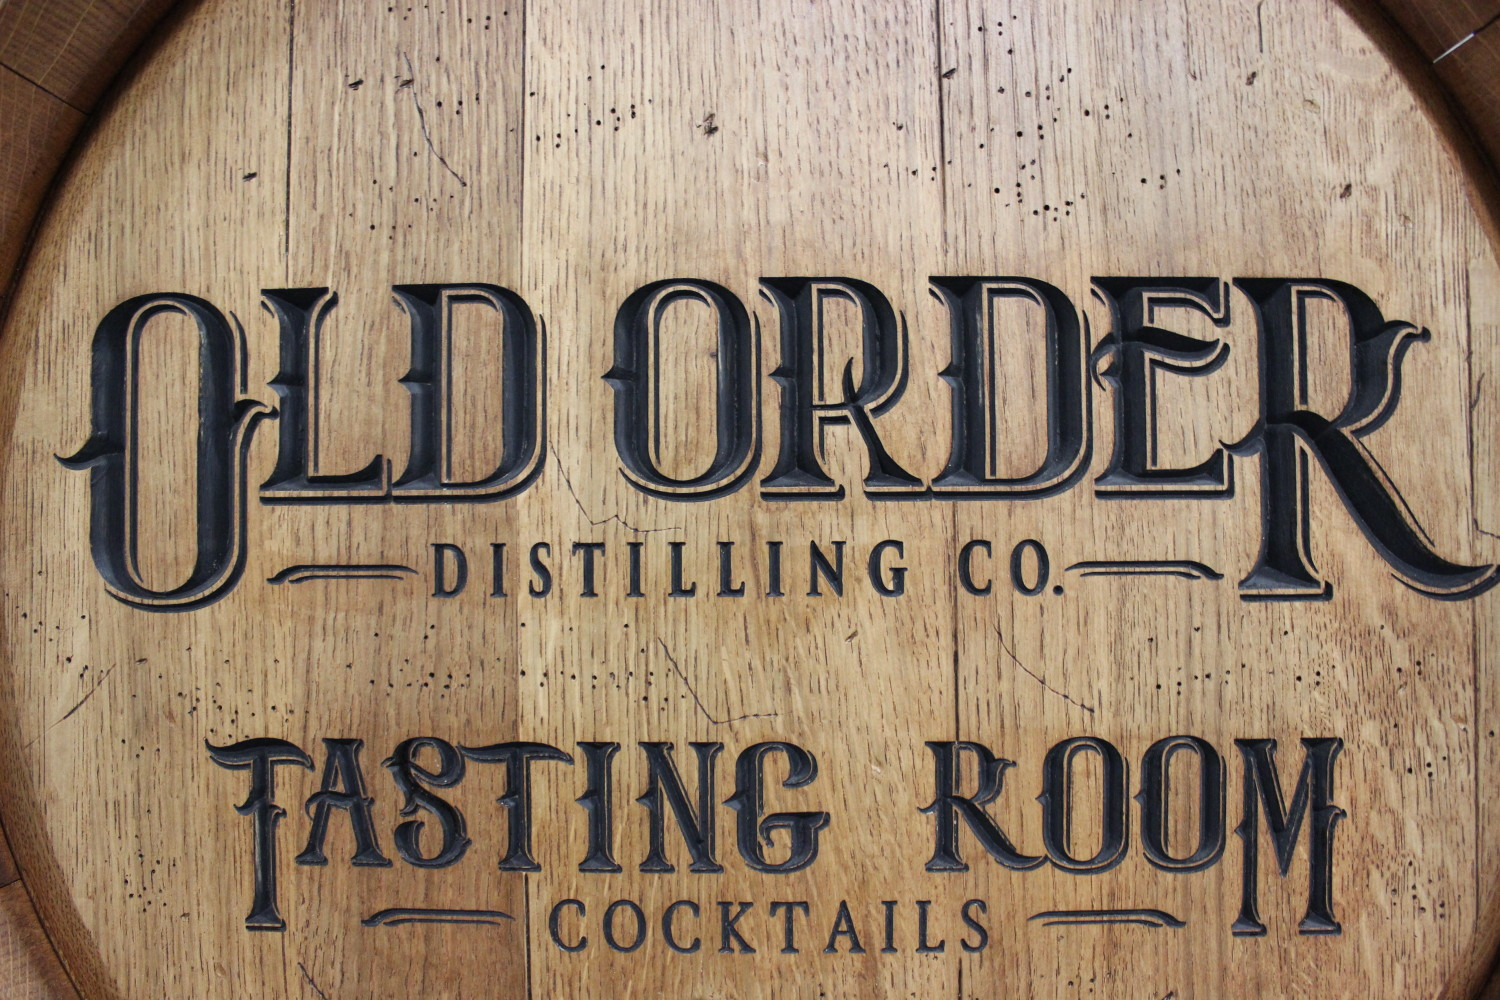 Old Order Distilling Co Penticton Okanagan Distillery